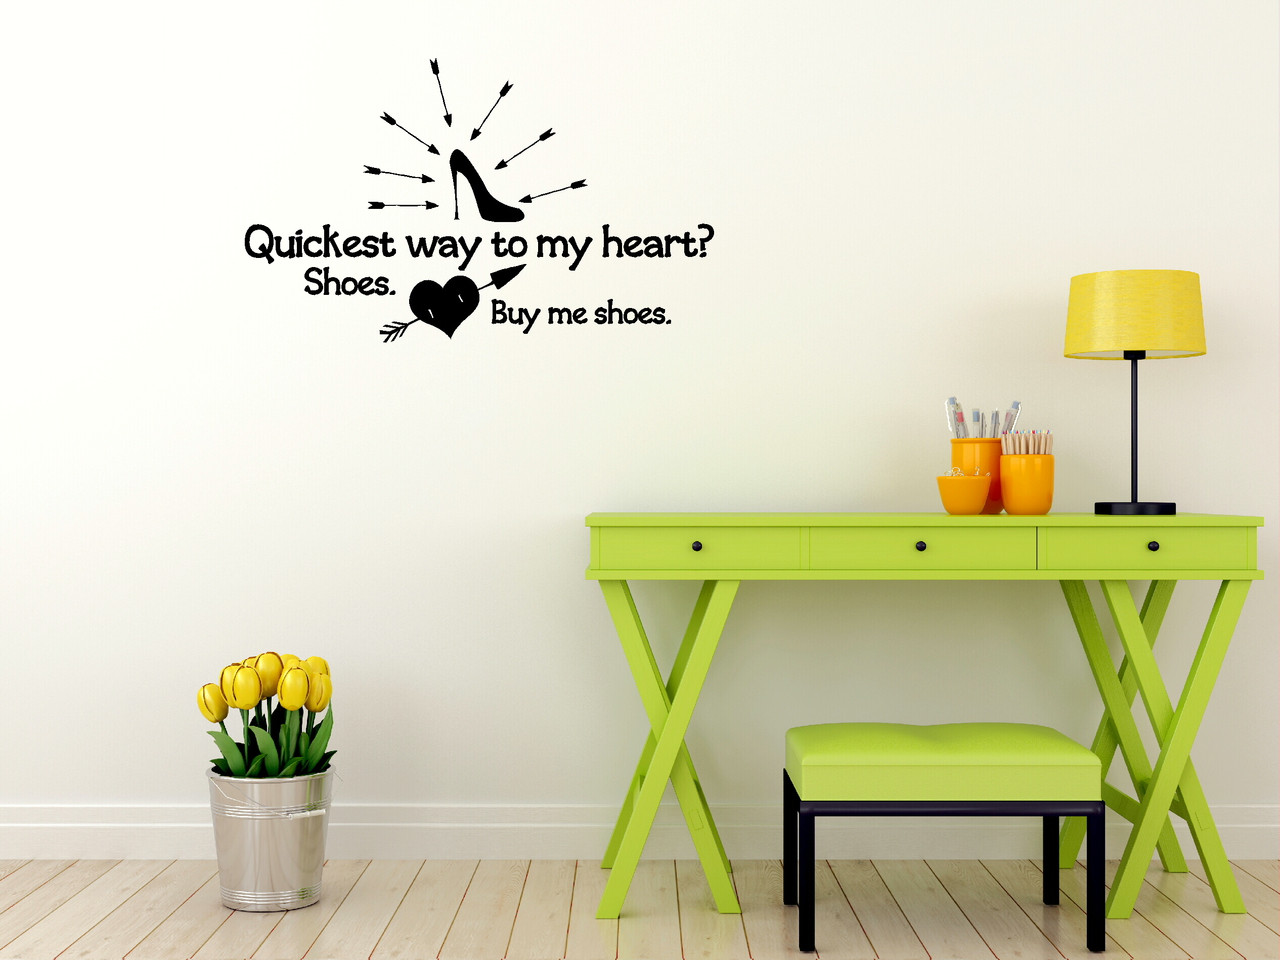 Captivating Buy Me Shoes   Funny Wall Decal Saying For Bedroom Home Decor Black.  Loading Zoom